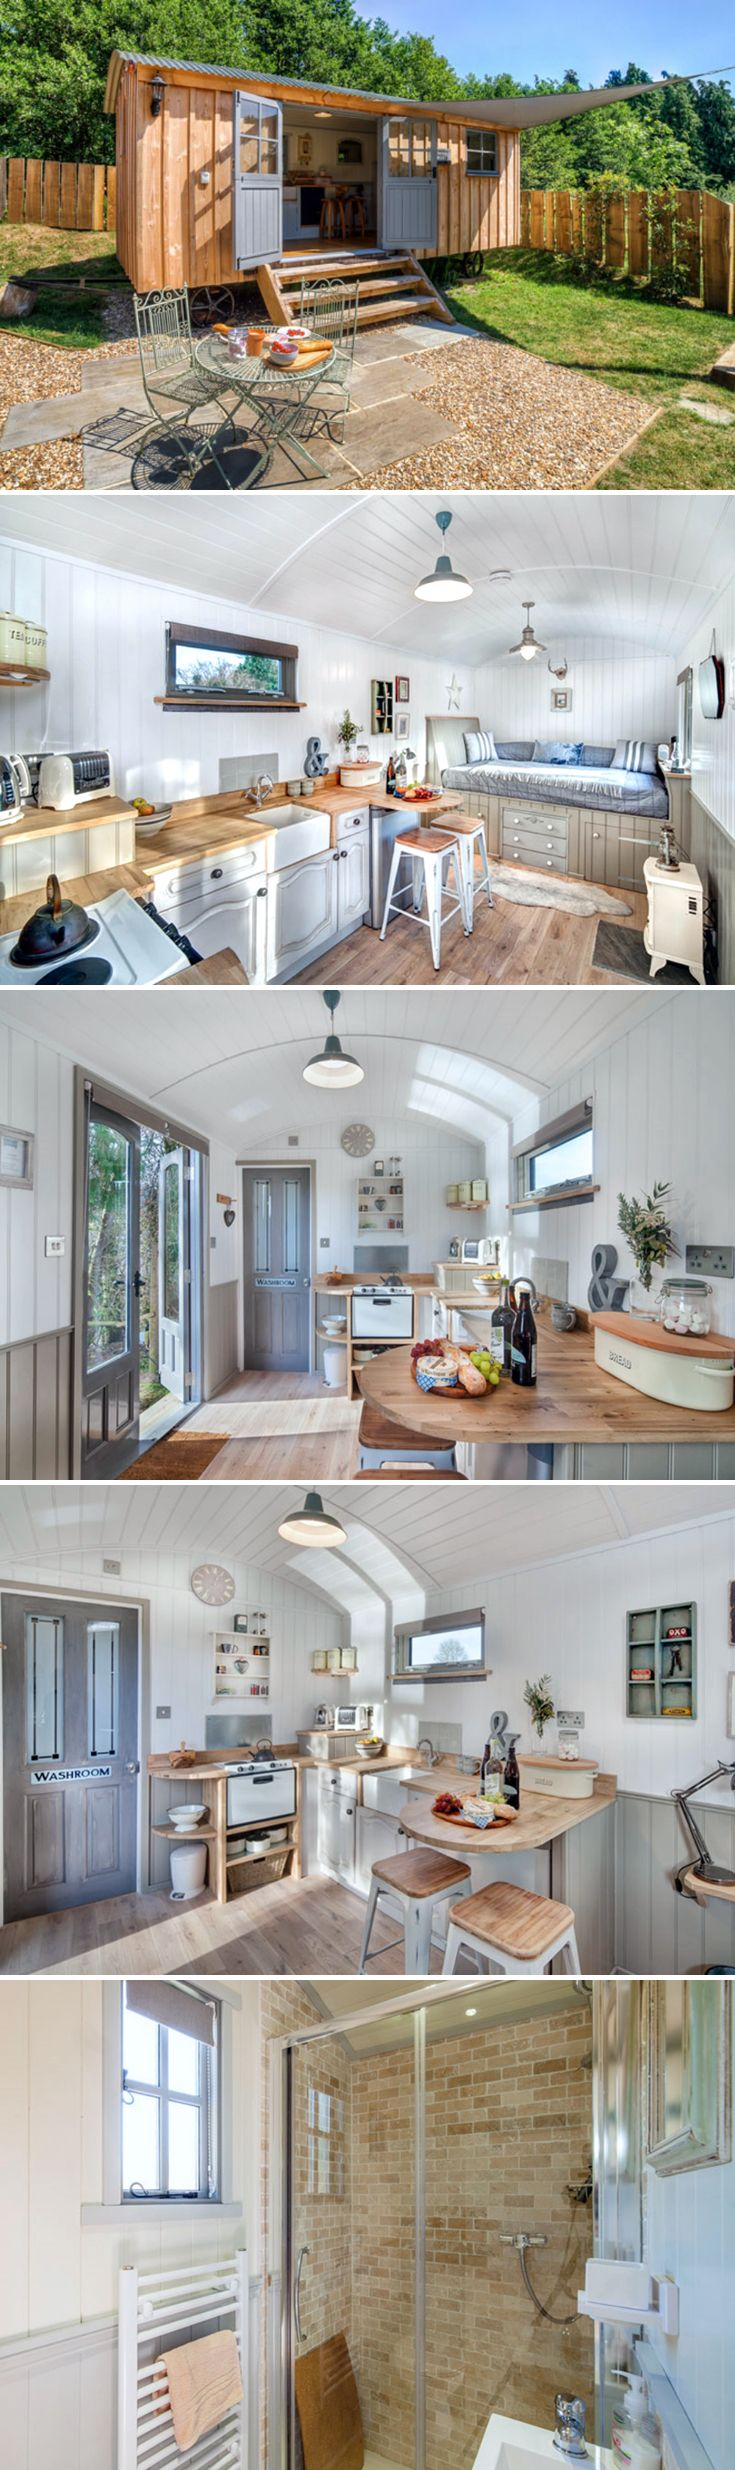 Bayview By Cali Cottages Tiny Houses Pinterest Haus